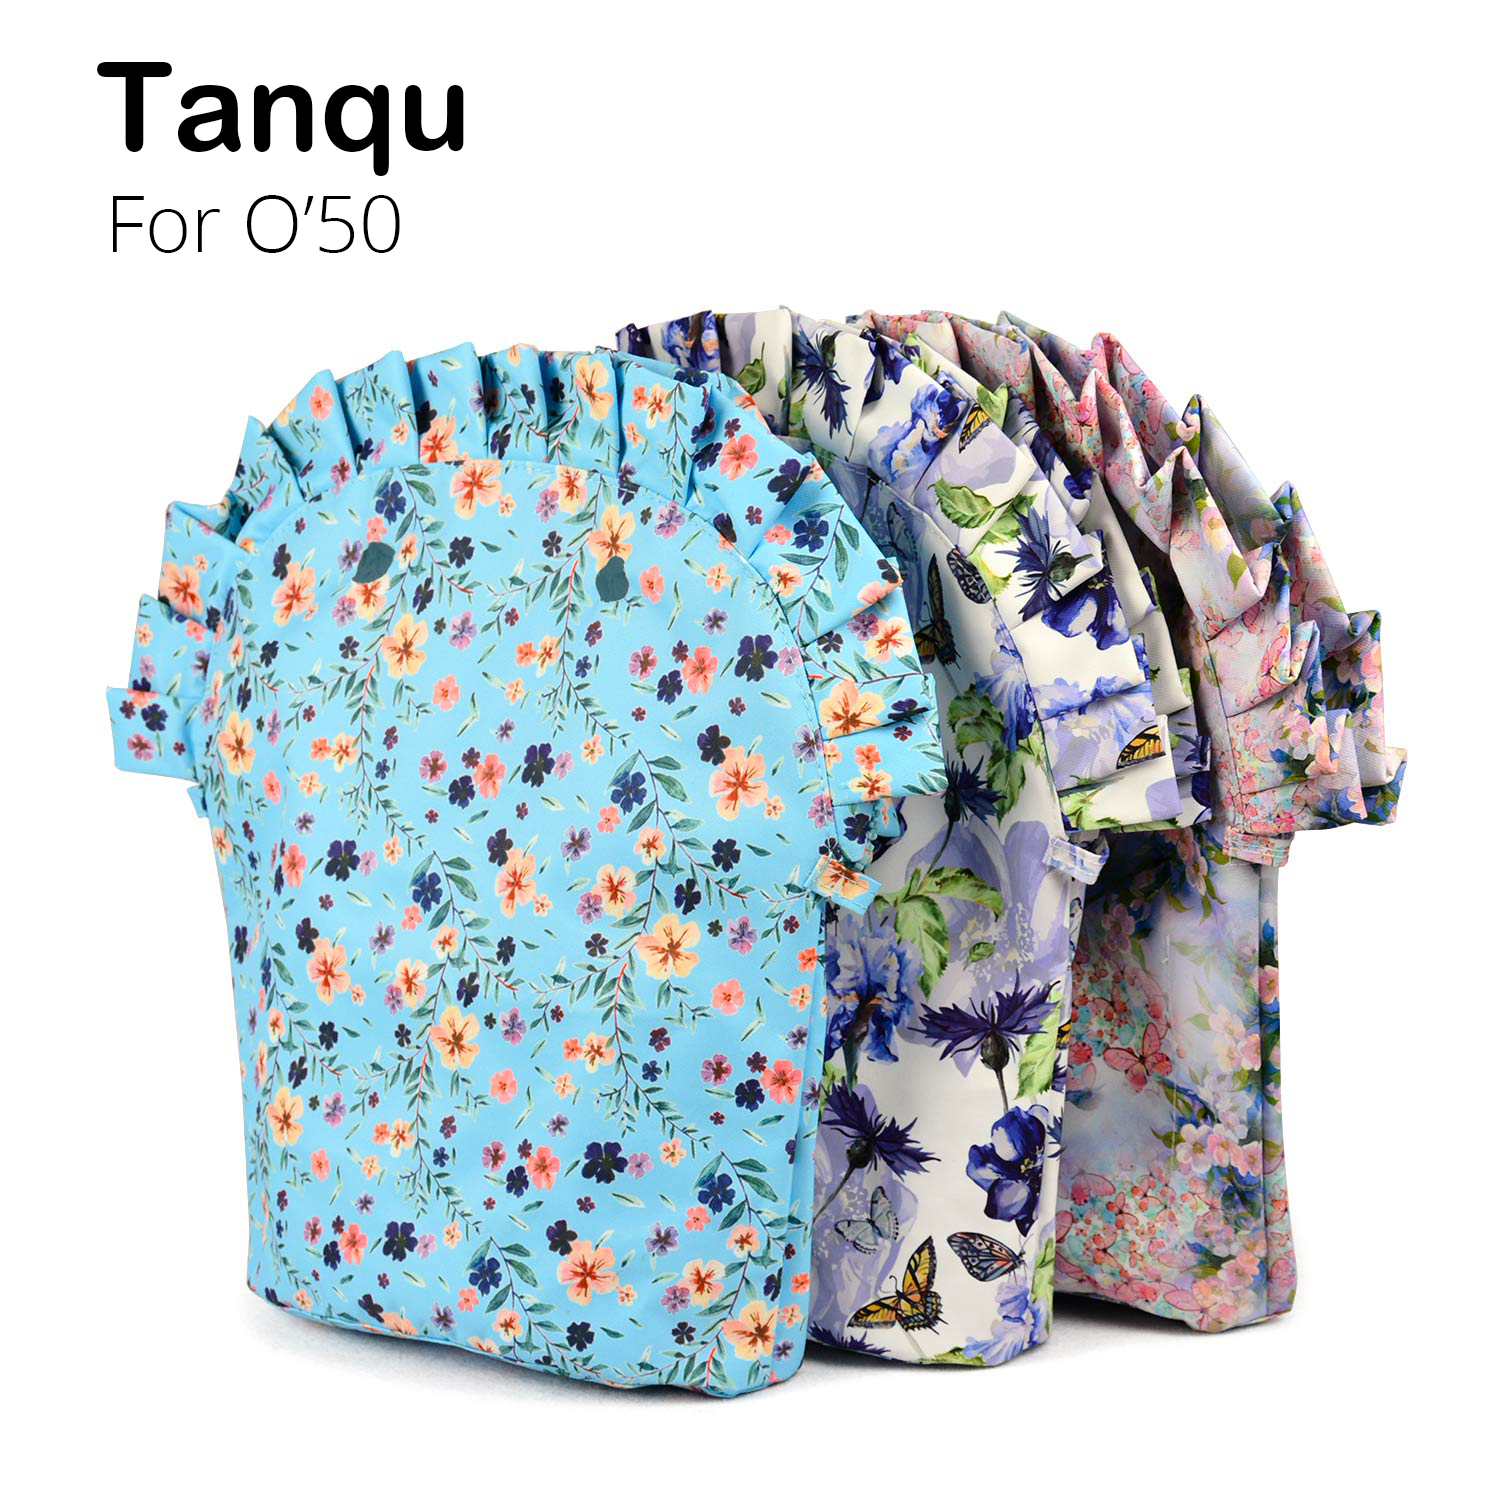 TANQU Floral Frill Pleat Lining Zipper Pocket For Obag 50 Composite Cloth Insert With Inner Waterproof Coating For O Bag 50